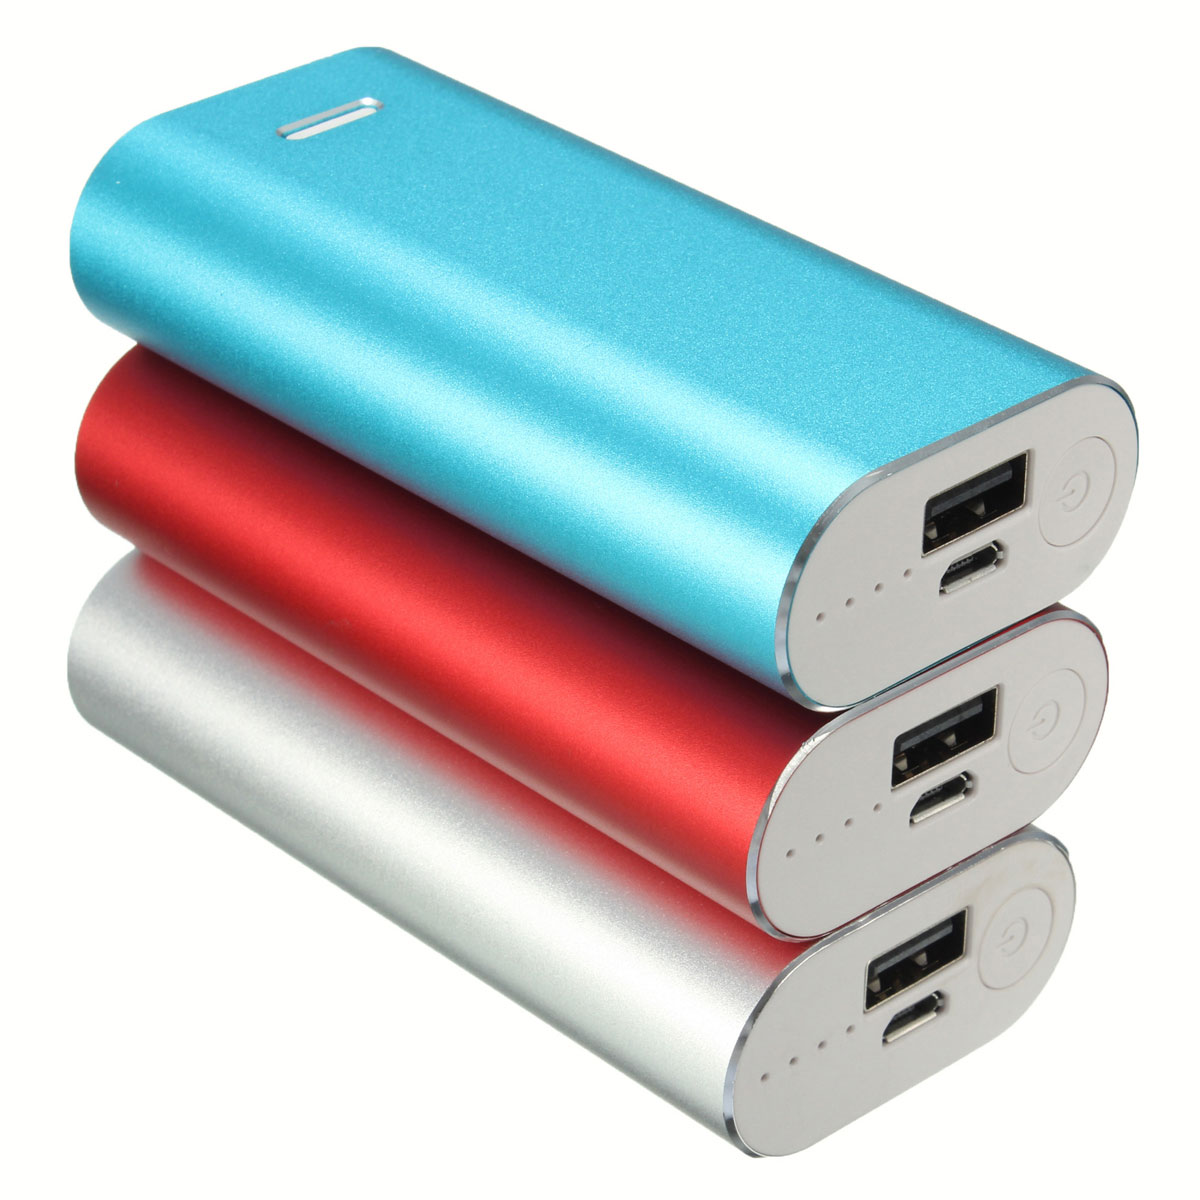 Universal Portable Safety USB DIY Power Bank Box 2x 18650 Battery Charger Case Kits for iPhone for Smart Cell Phones all Decives